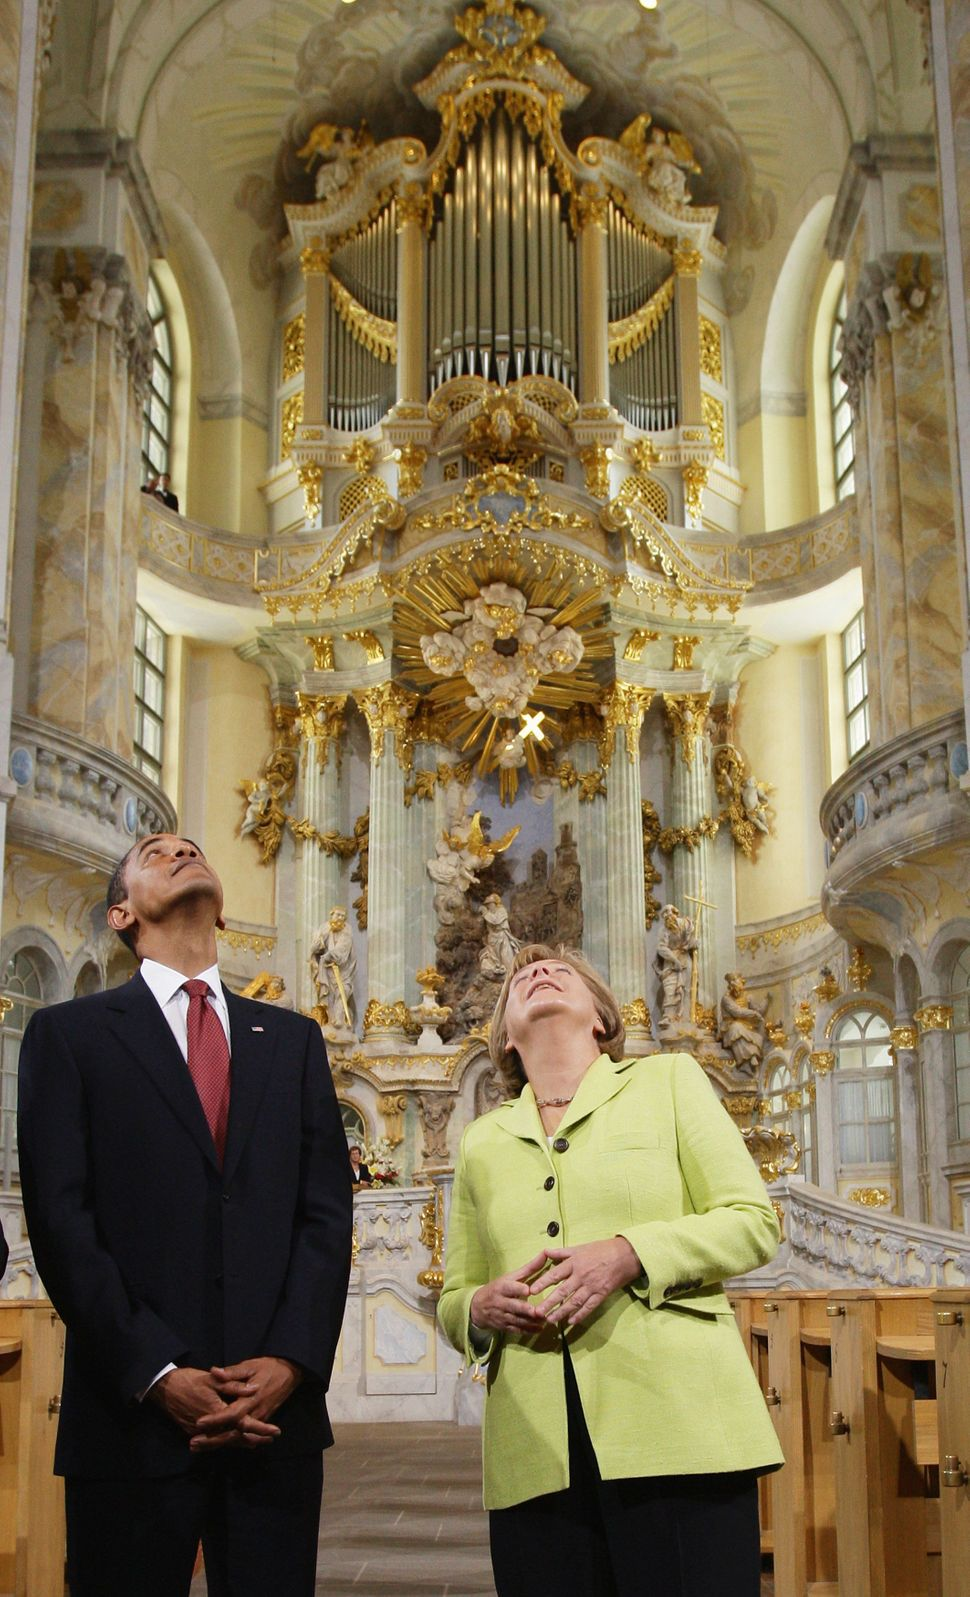 Obama and Merkel tour Dresden's landmark, the Frauenkirche (Church of Our Lady) on June 5, 2009, in Dresden, Germany.